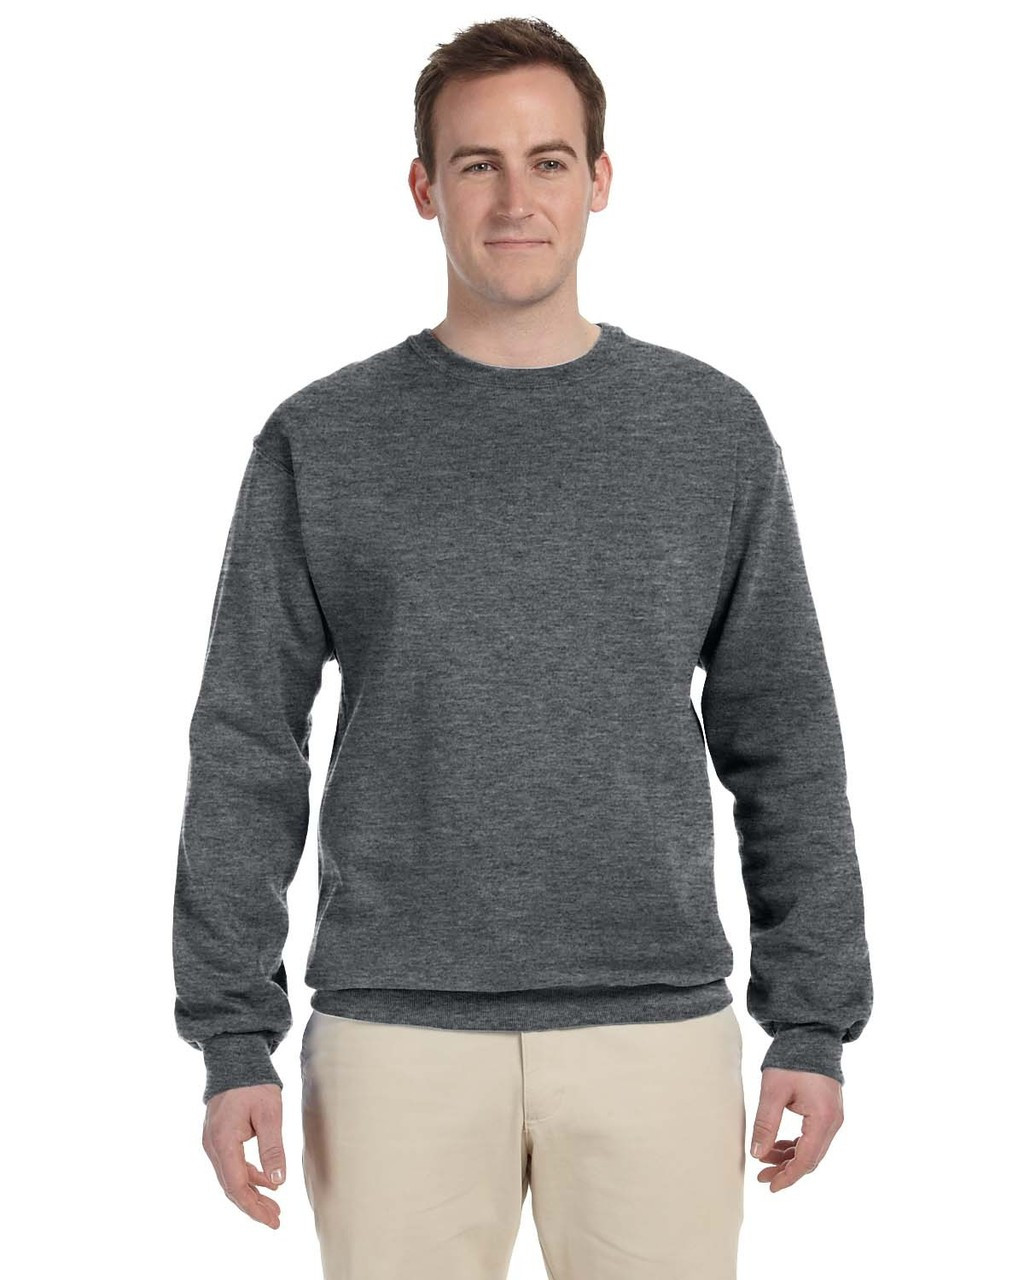 Athletic Heather 82300 Fruit of the Loom Supercotton™ Fleece Crew Sweater | Blankclothing.ca